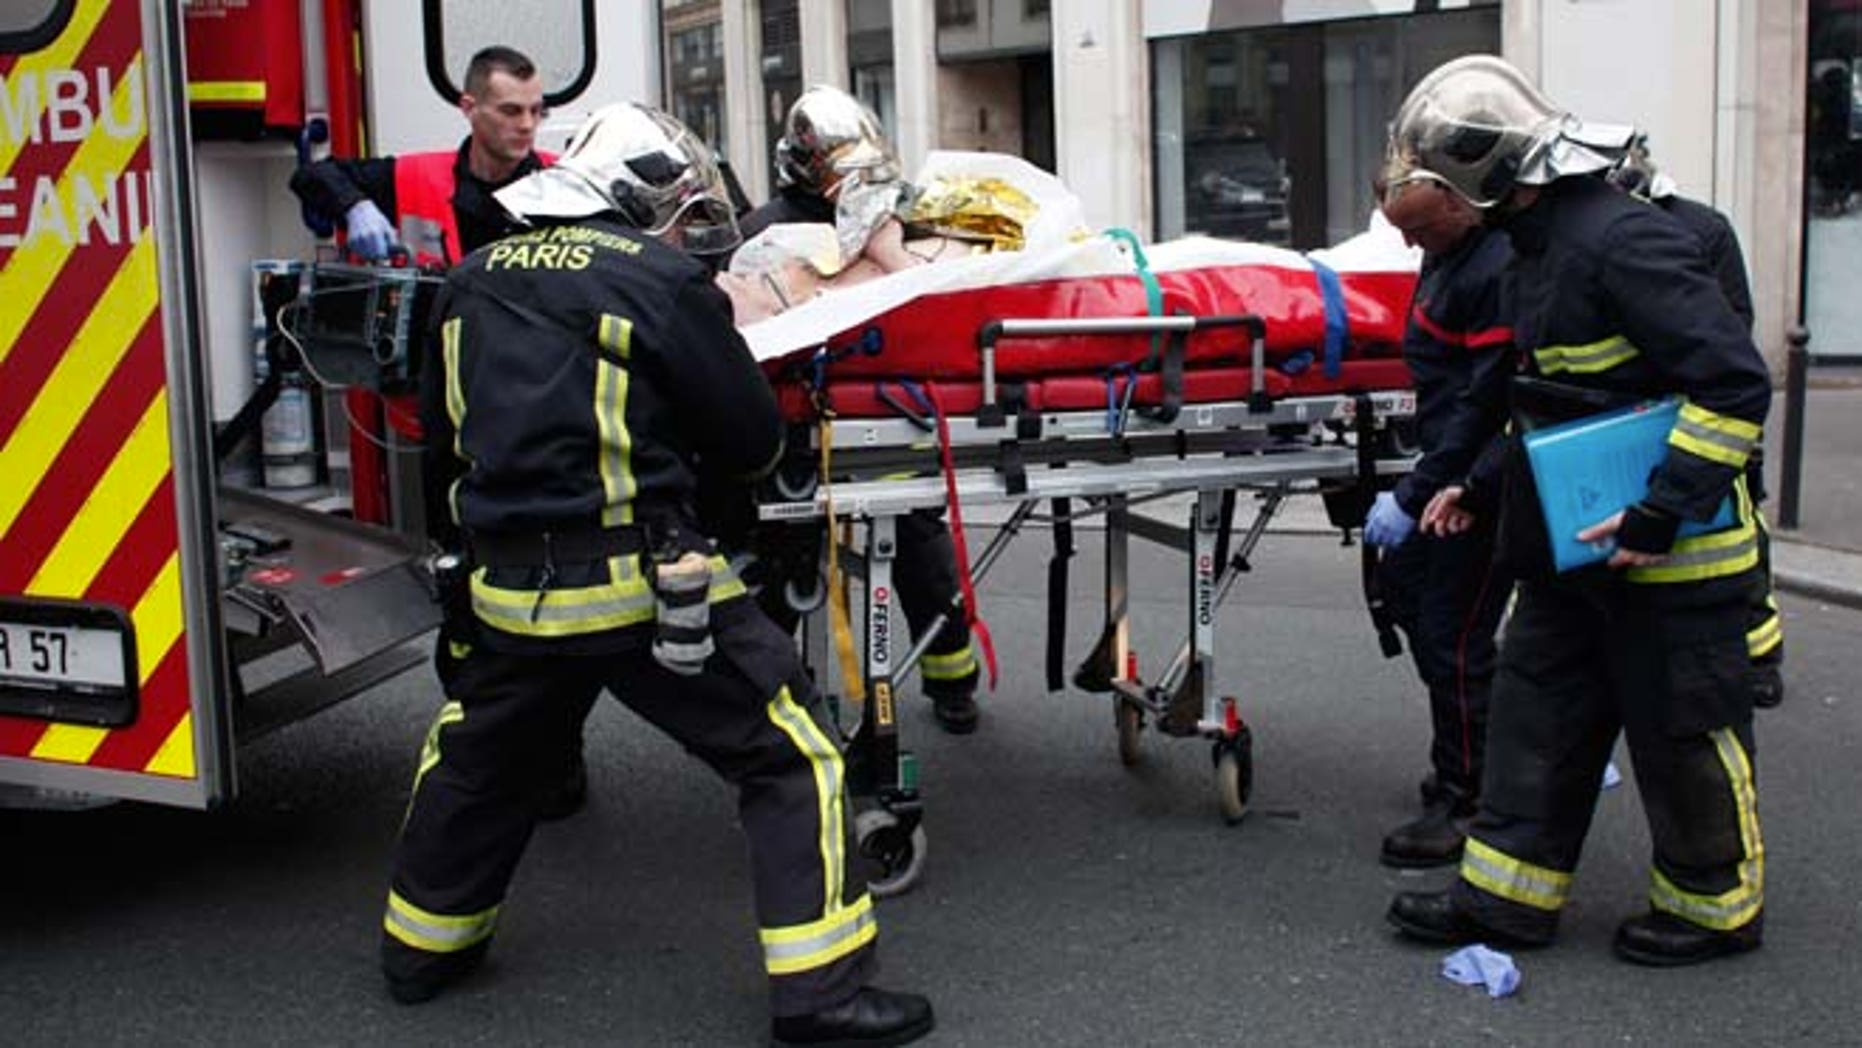 Jan. 7, 2015: An injured person is transported to an ambulance after a shooting, at the French satirical newspaper Charlie Hebdo's office, in Paris. (AP)